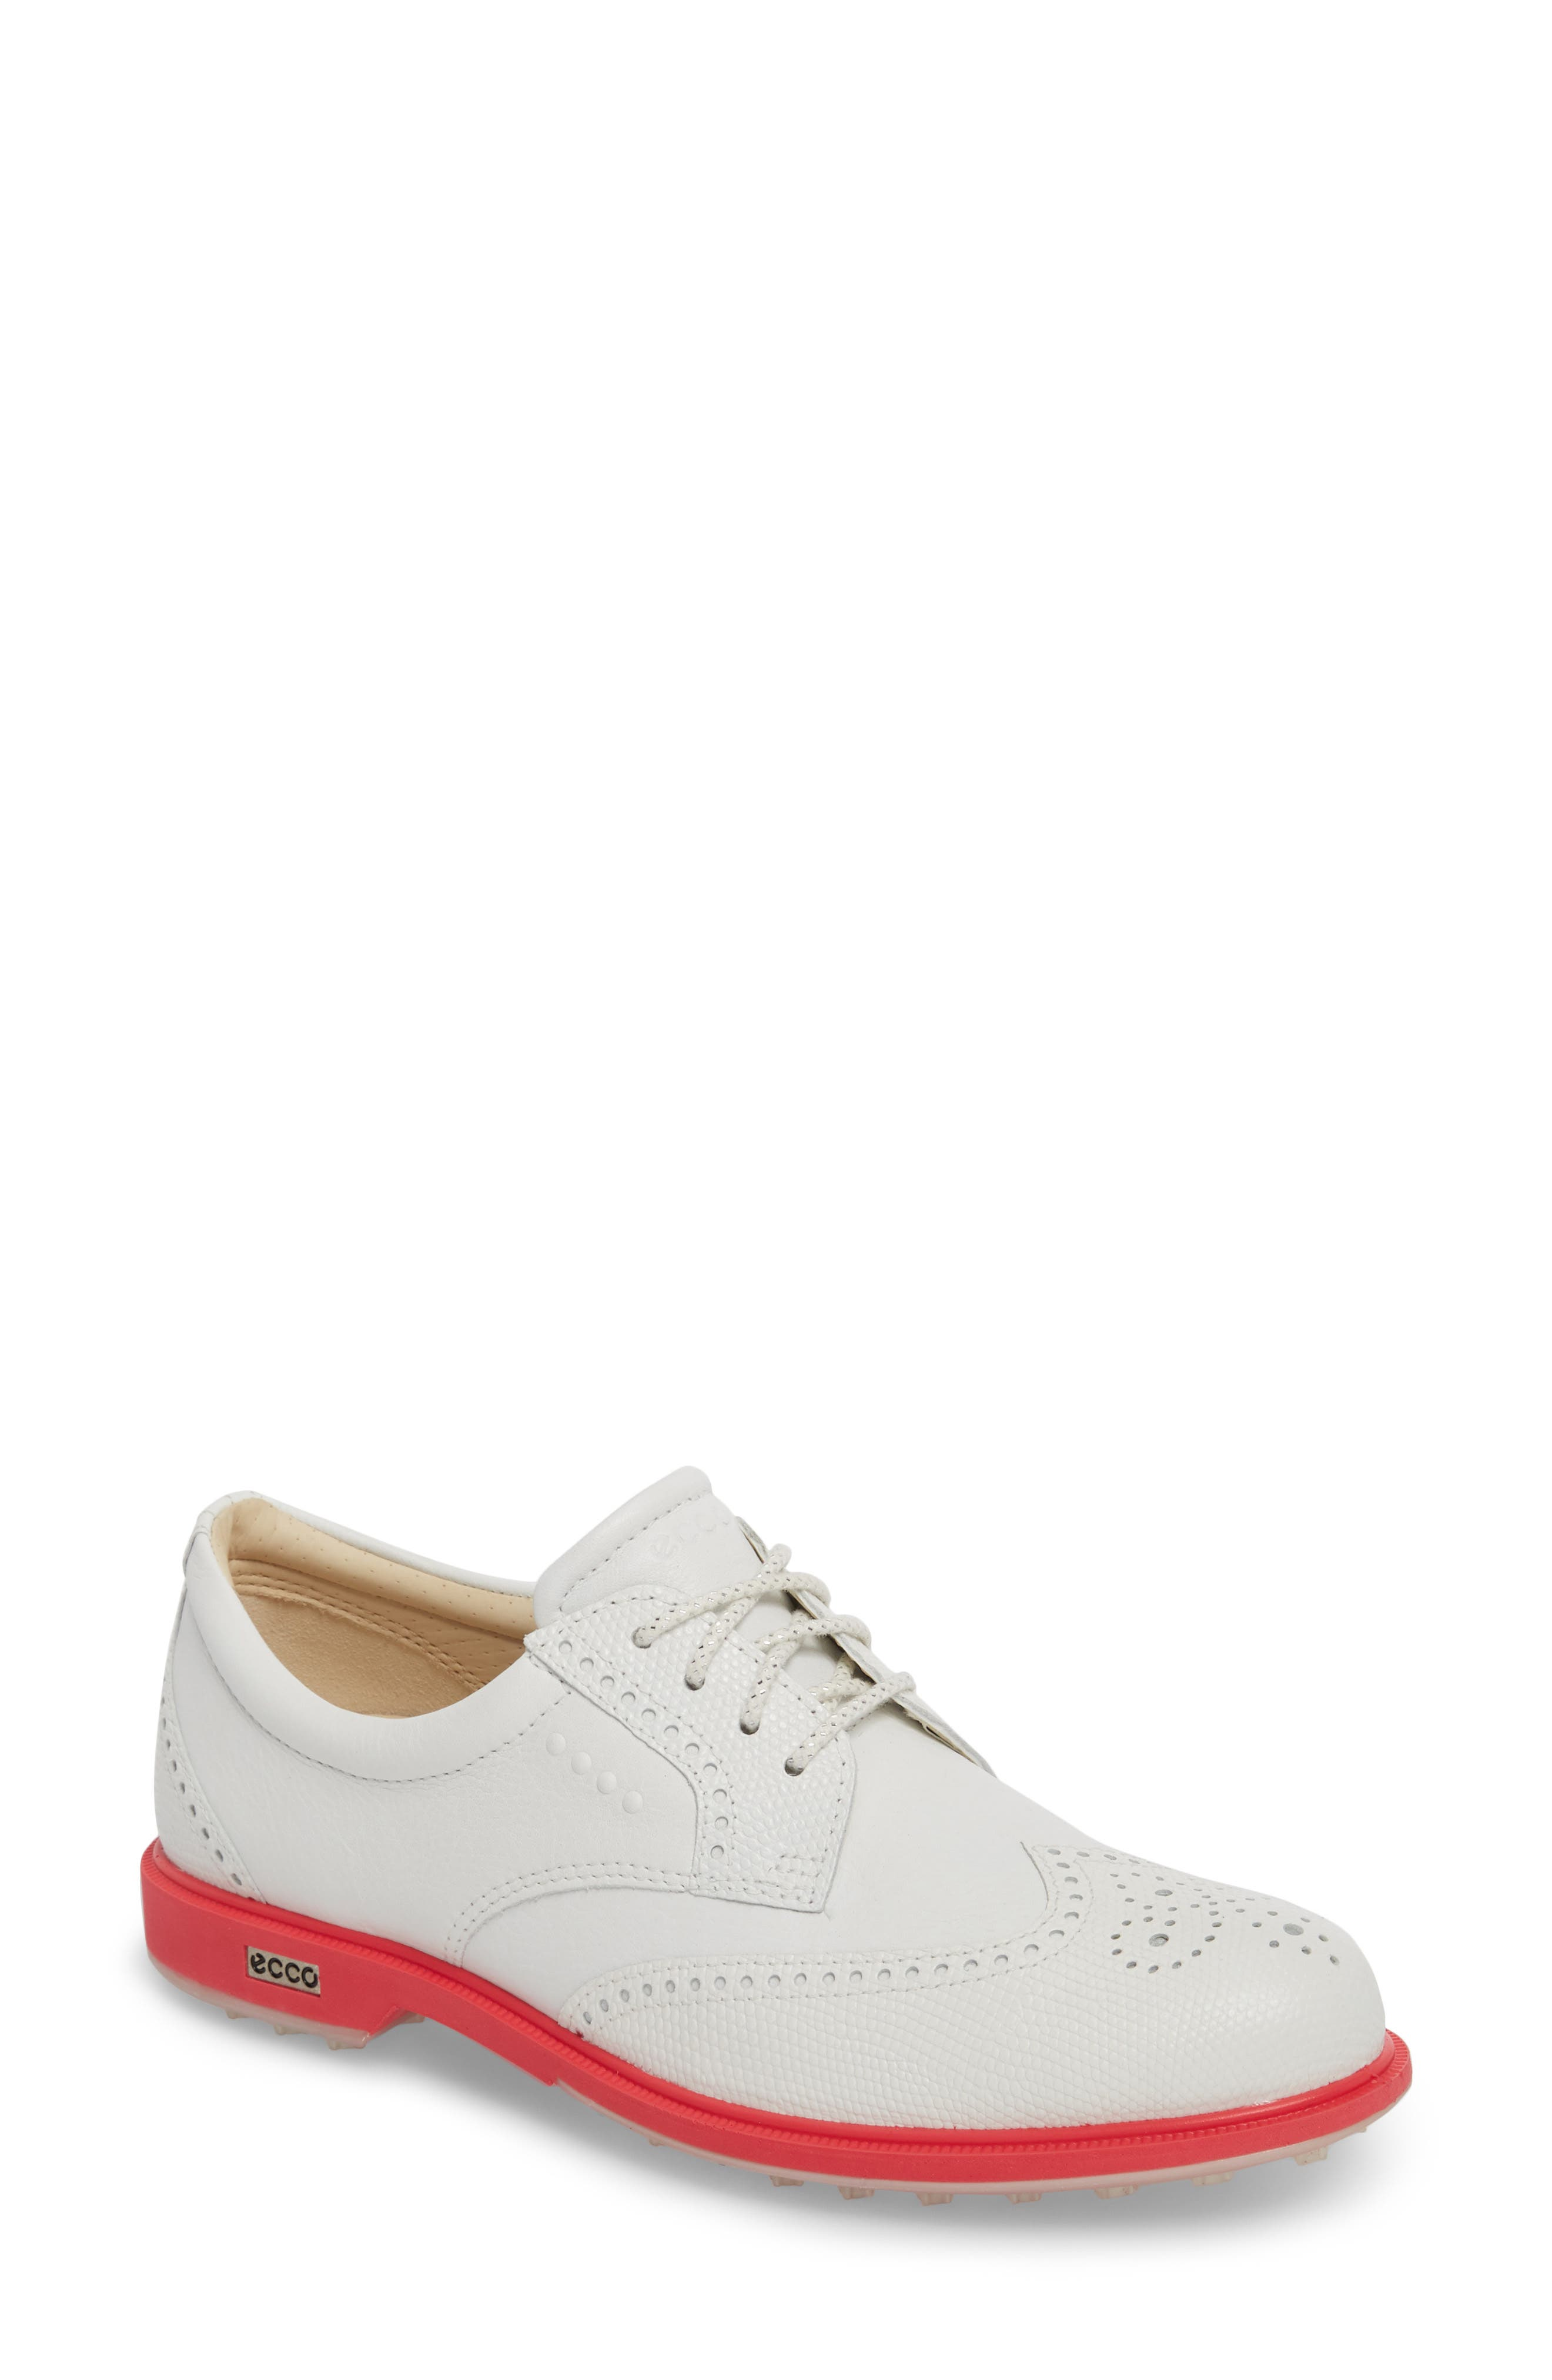 ECCO 'Tour' Hybrid Wingtip Golf Shoe (Women)